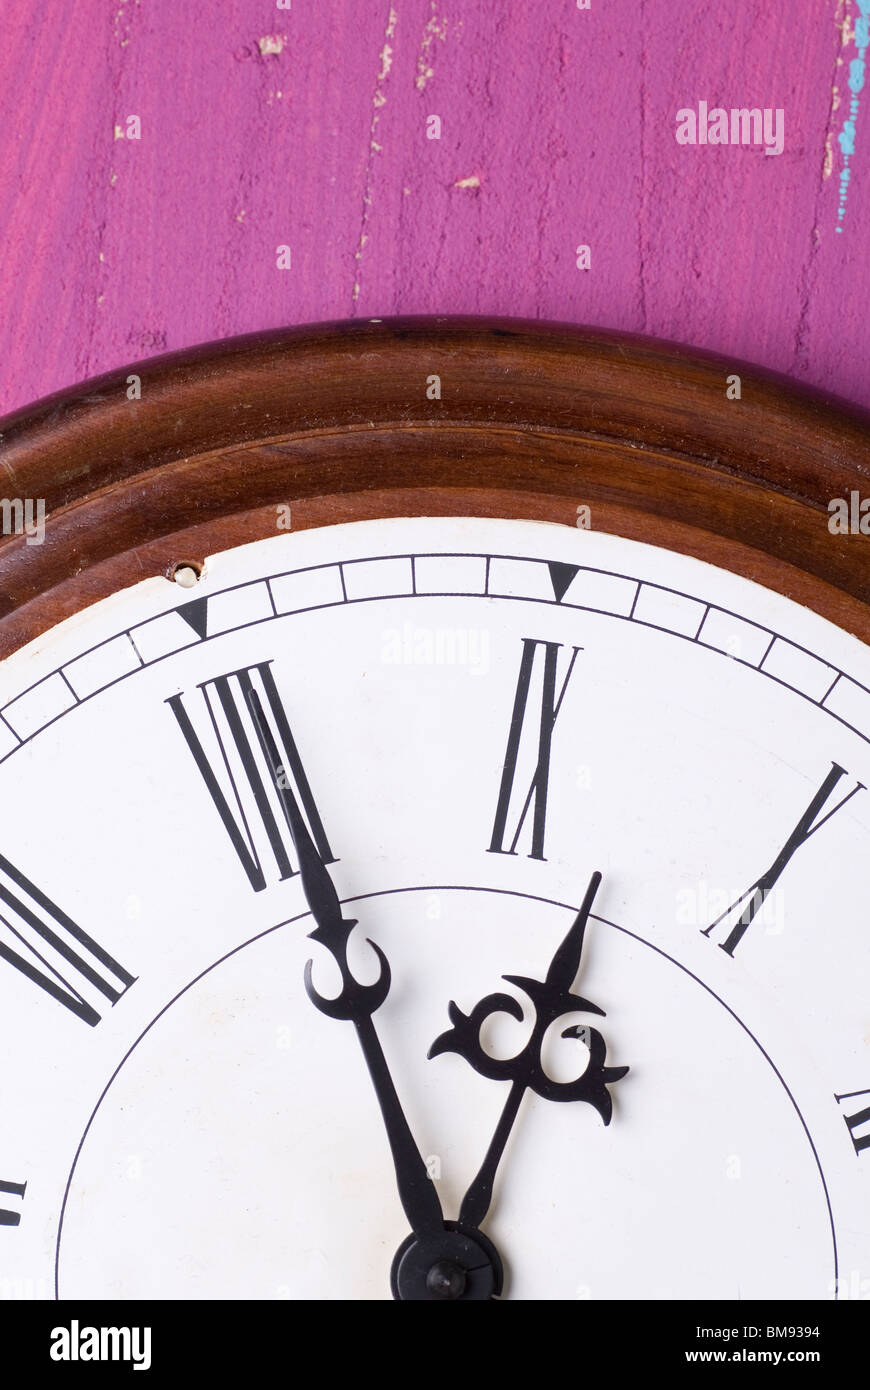 Closeup of an old wall clock - Stock Image